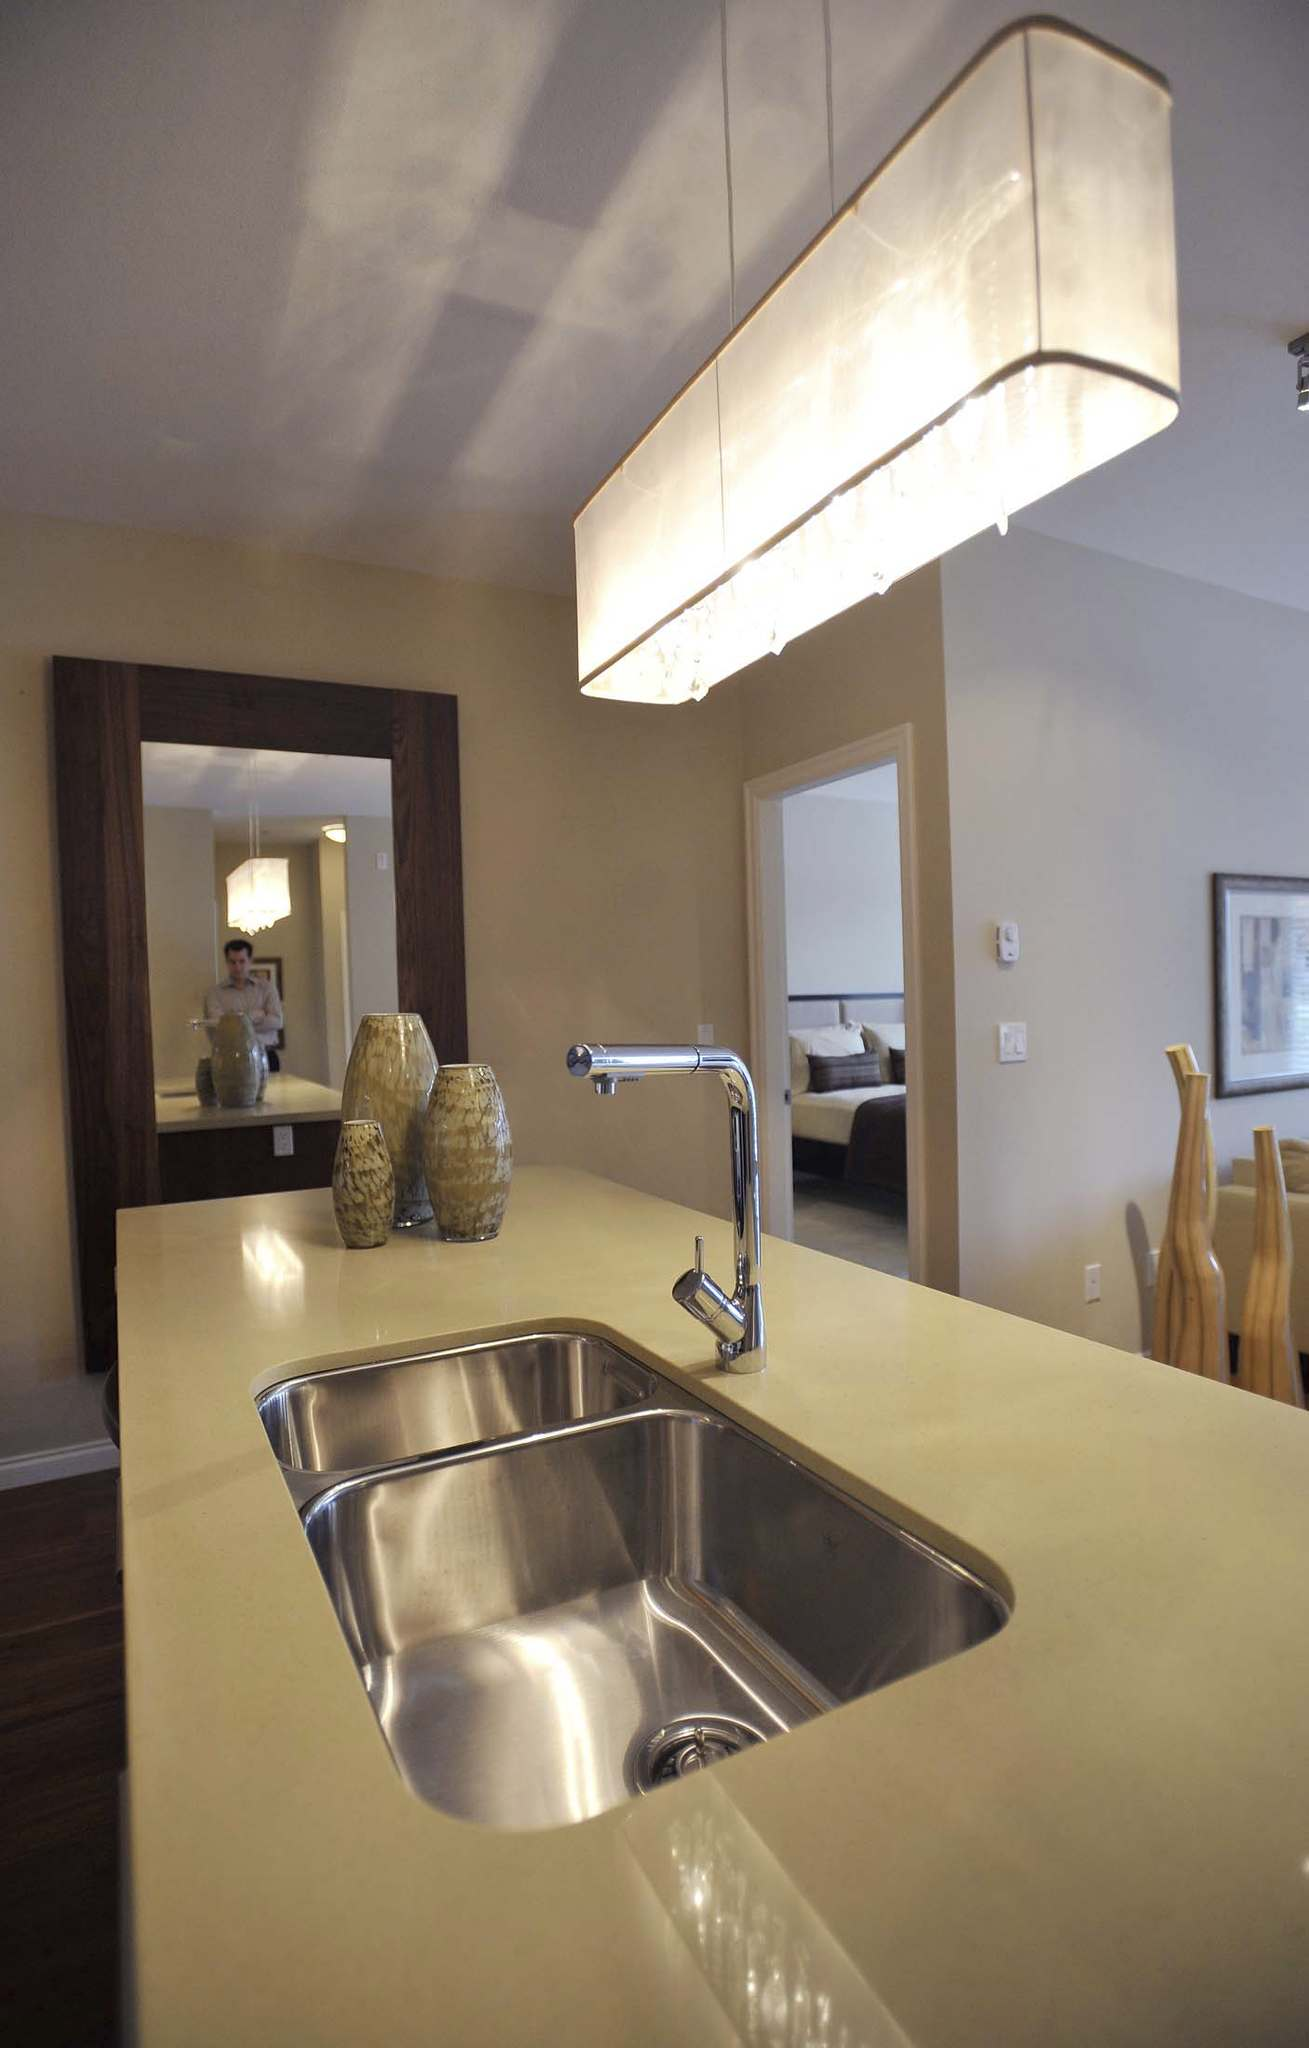 Ric Ernst / Holmes GroupWith the right mix of ingredients and effort, you can restore the shine to your stainless steel kitchen sink.